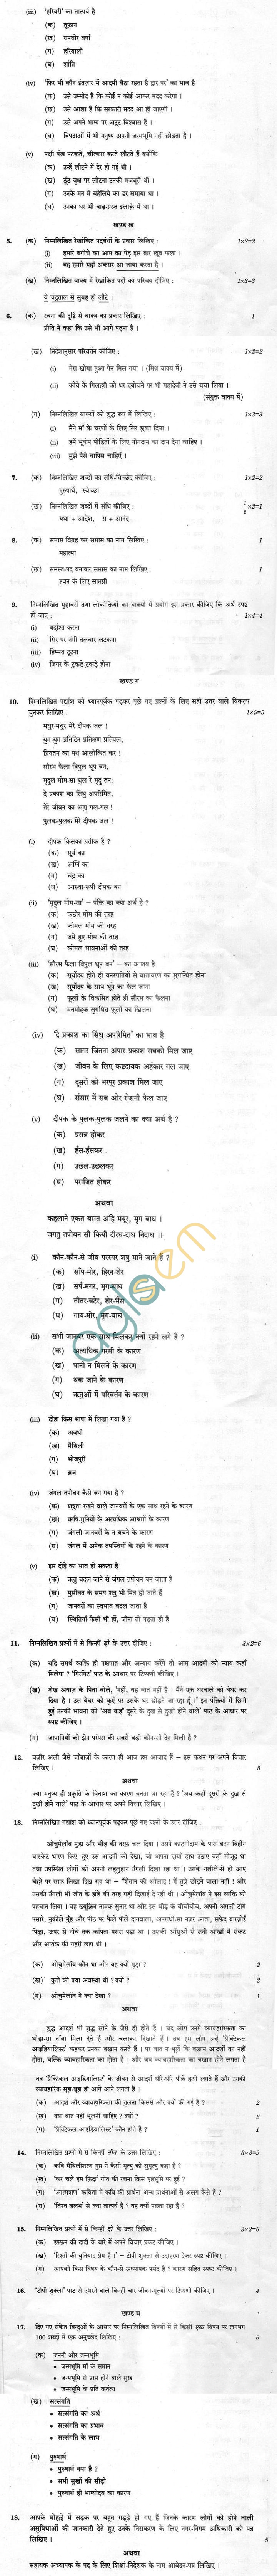 CBSE Compartment Exam 2013 Class X Question Paper - Hindi (Course B)